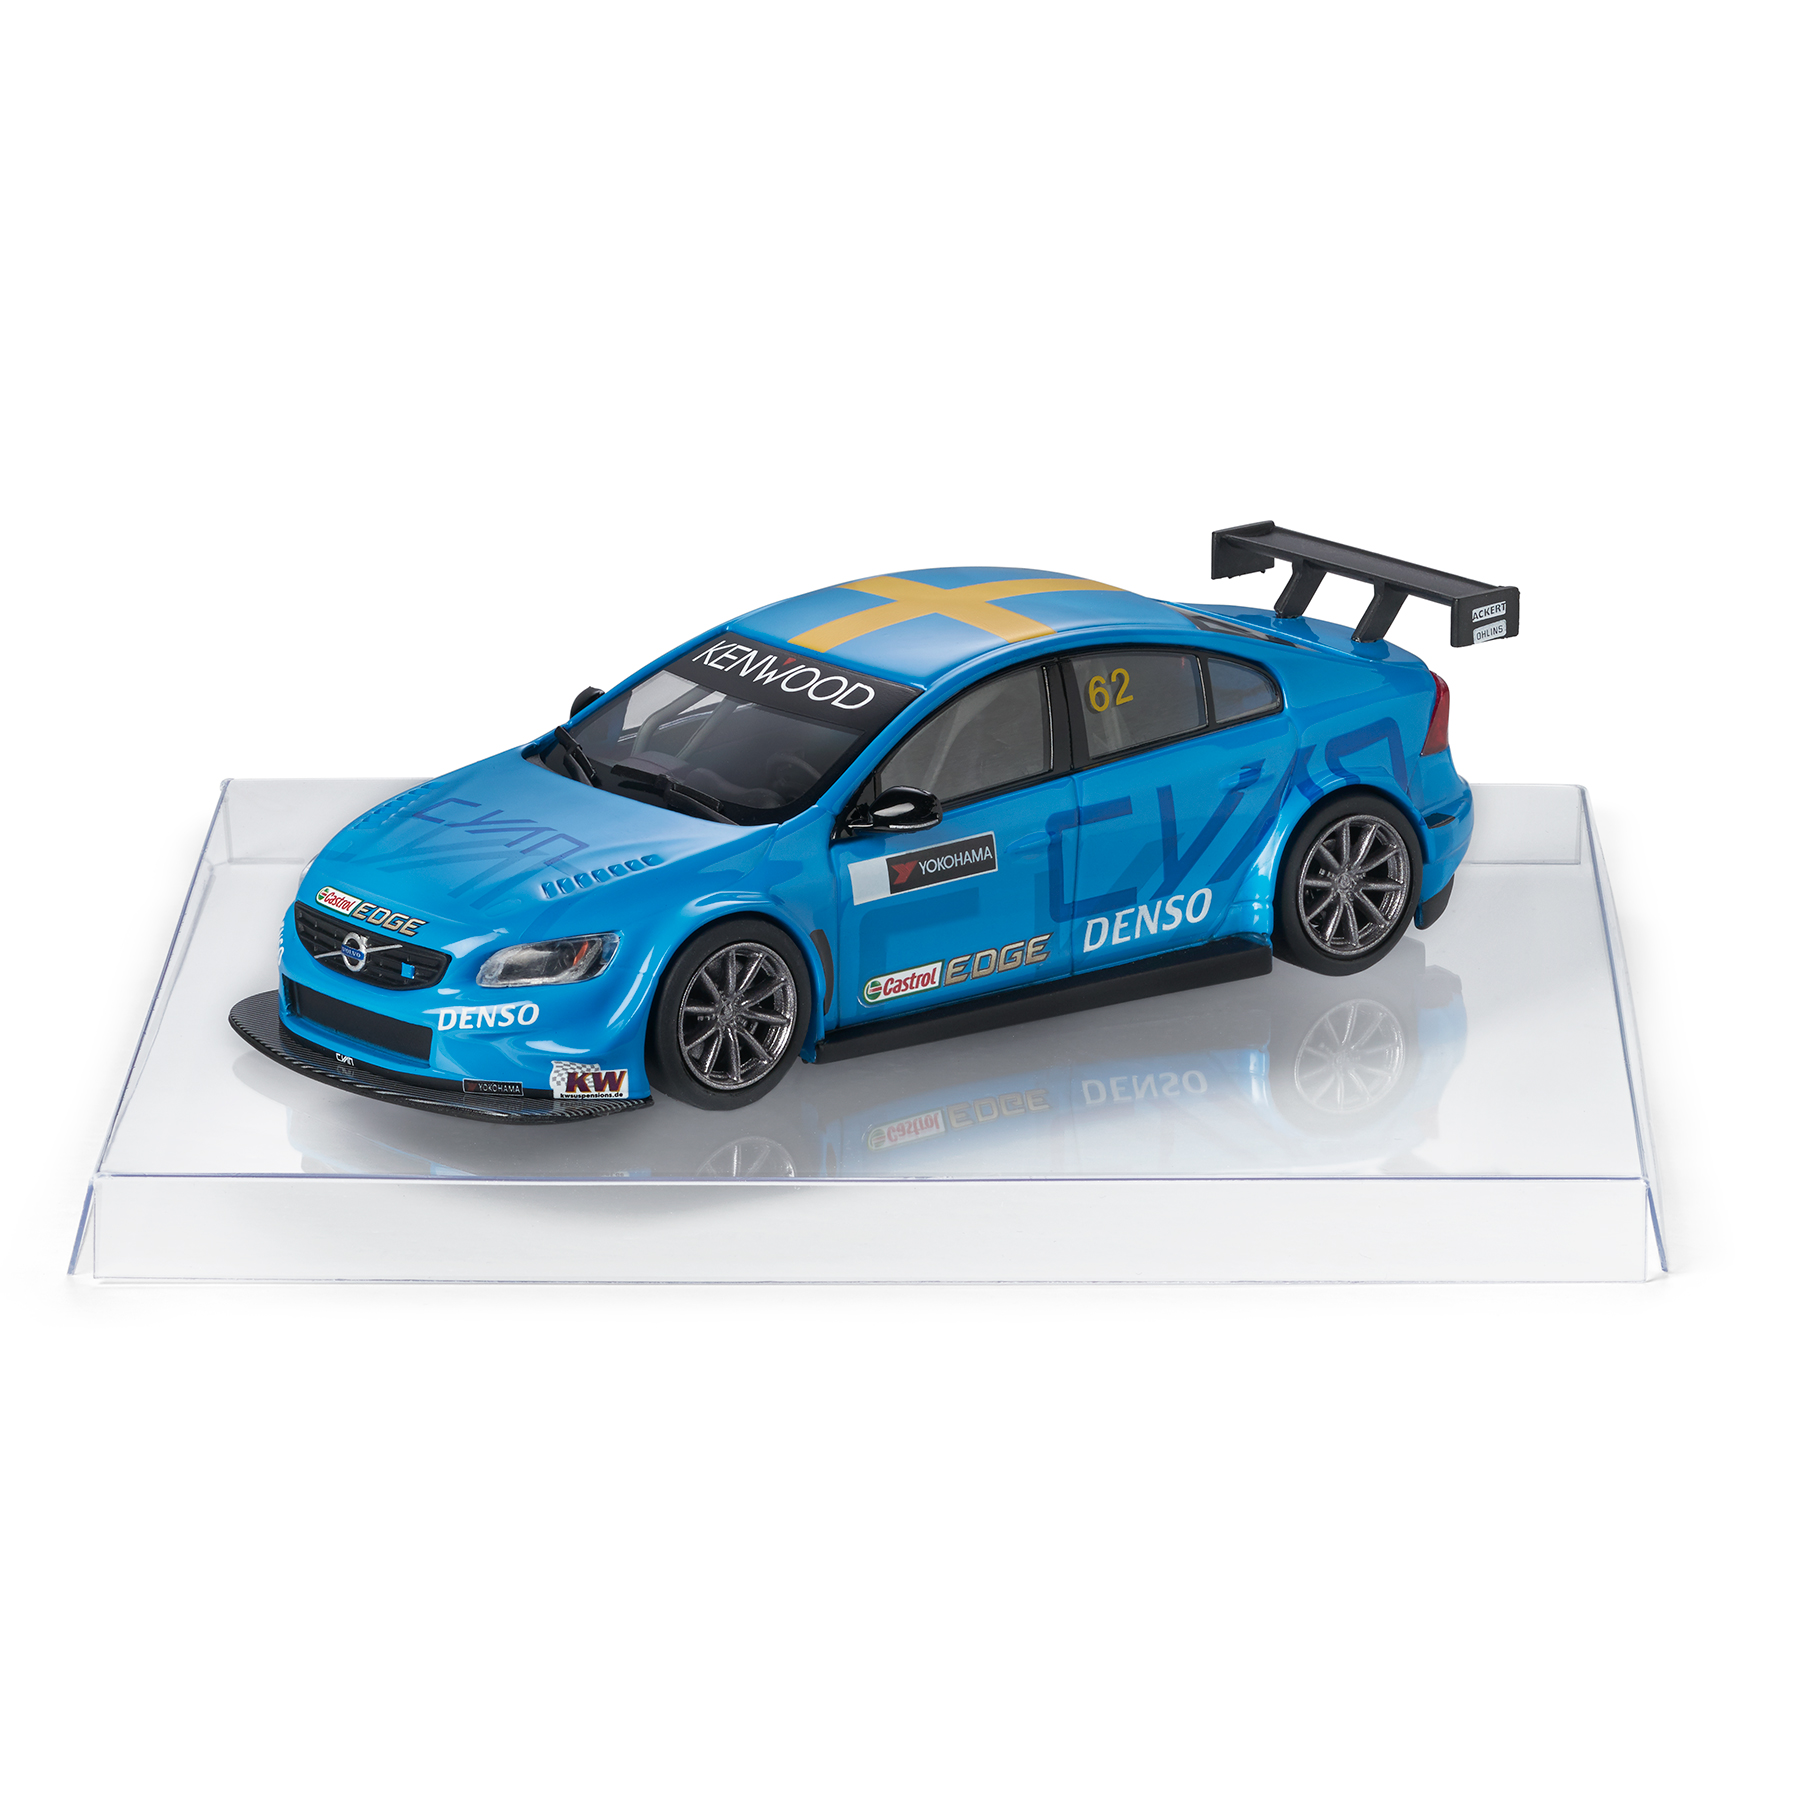 Volvo Car Lifestyle Collection Shop. Cyan Polestar S60 WTCC Polestar 1:43